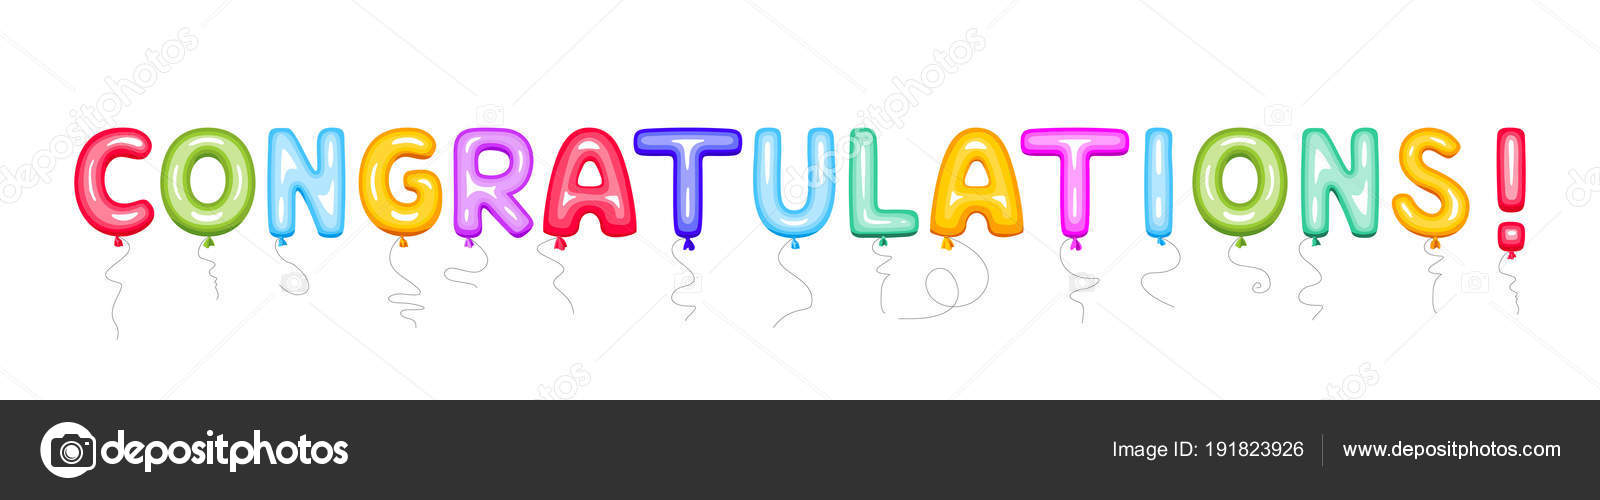 congratulations sign color balloons vector illustration use